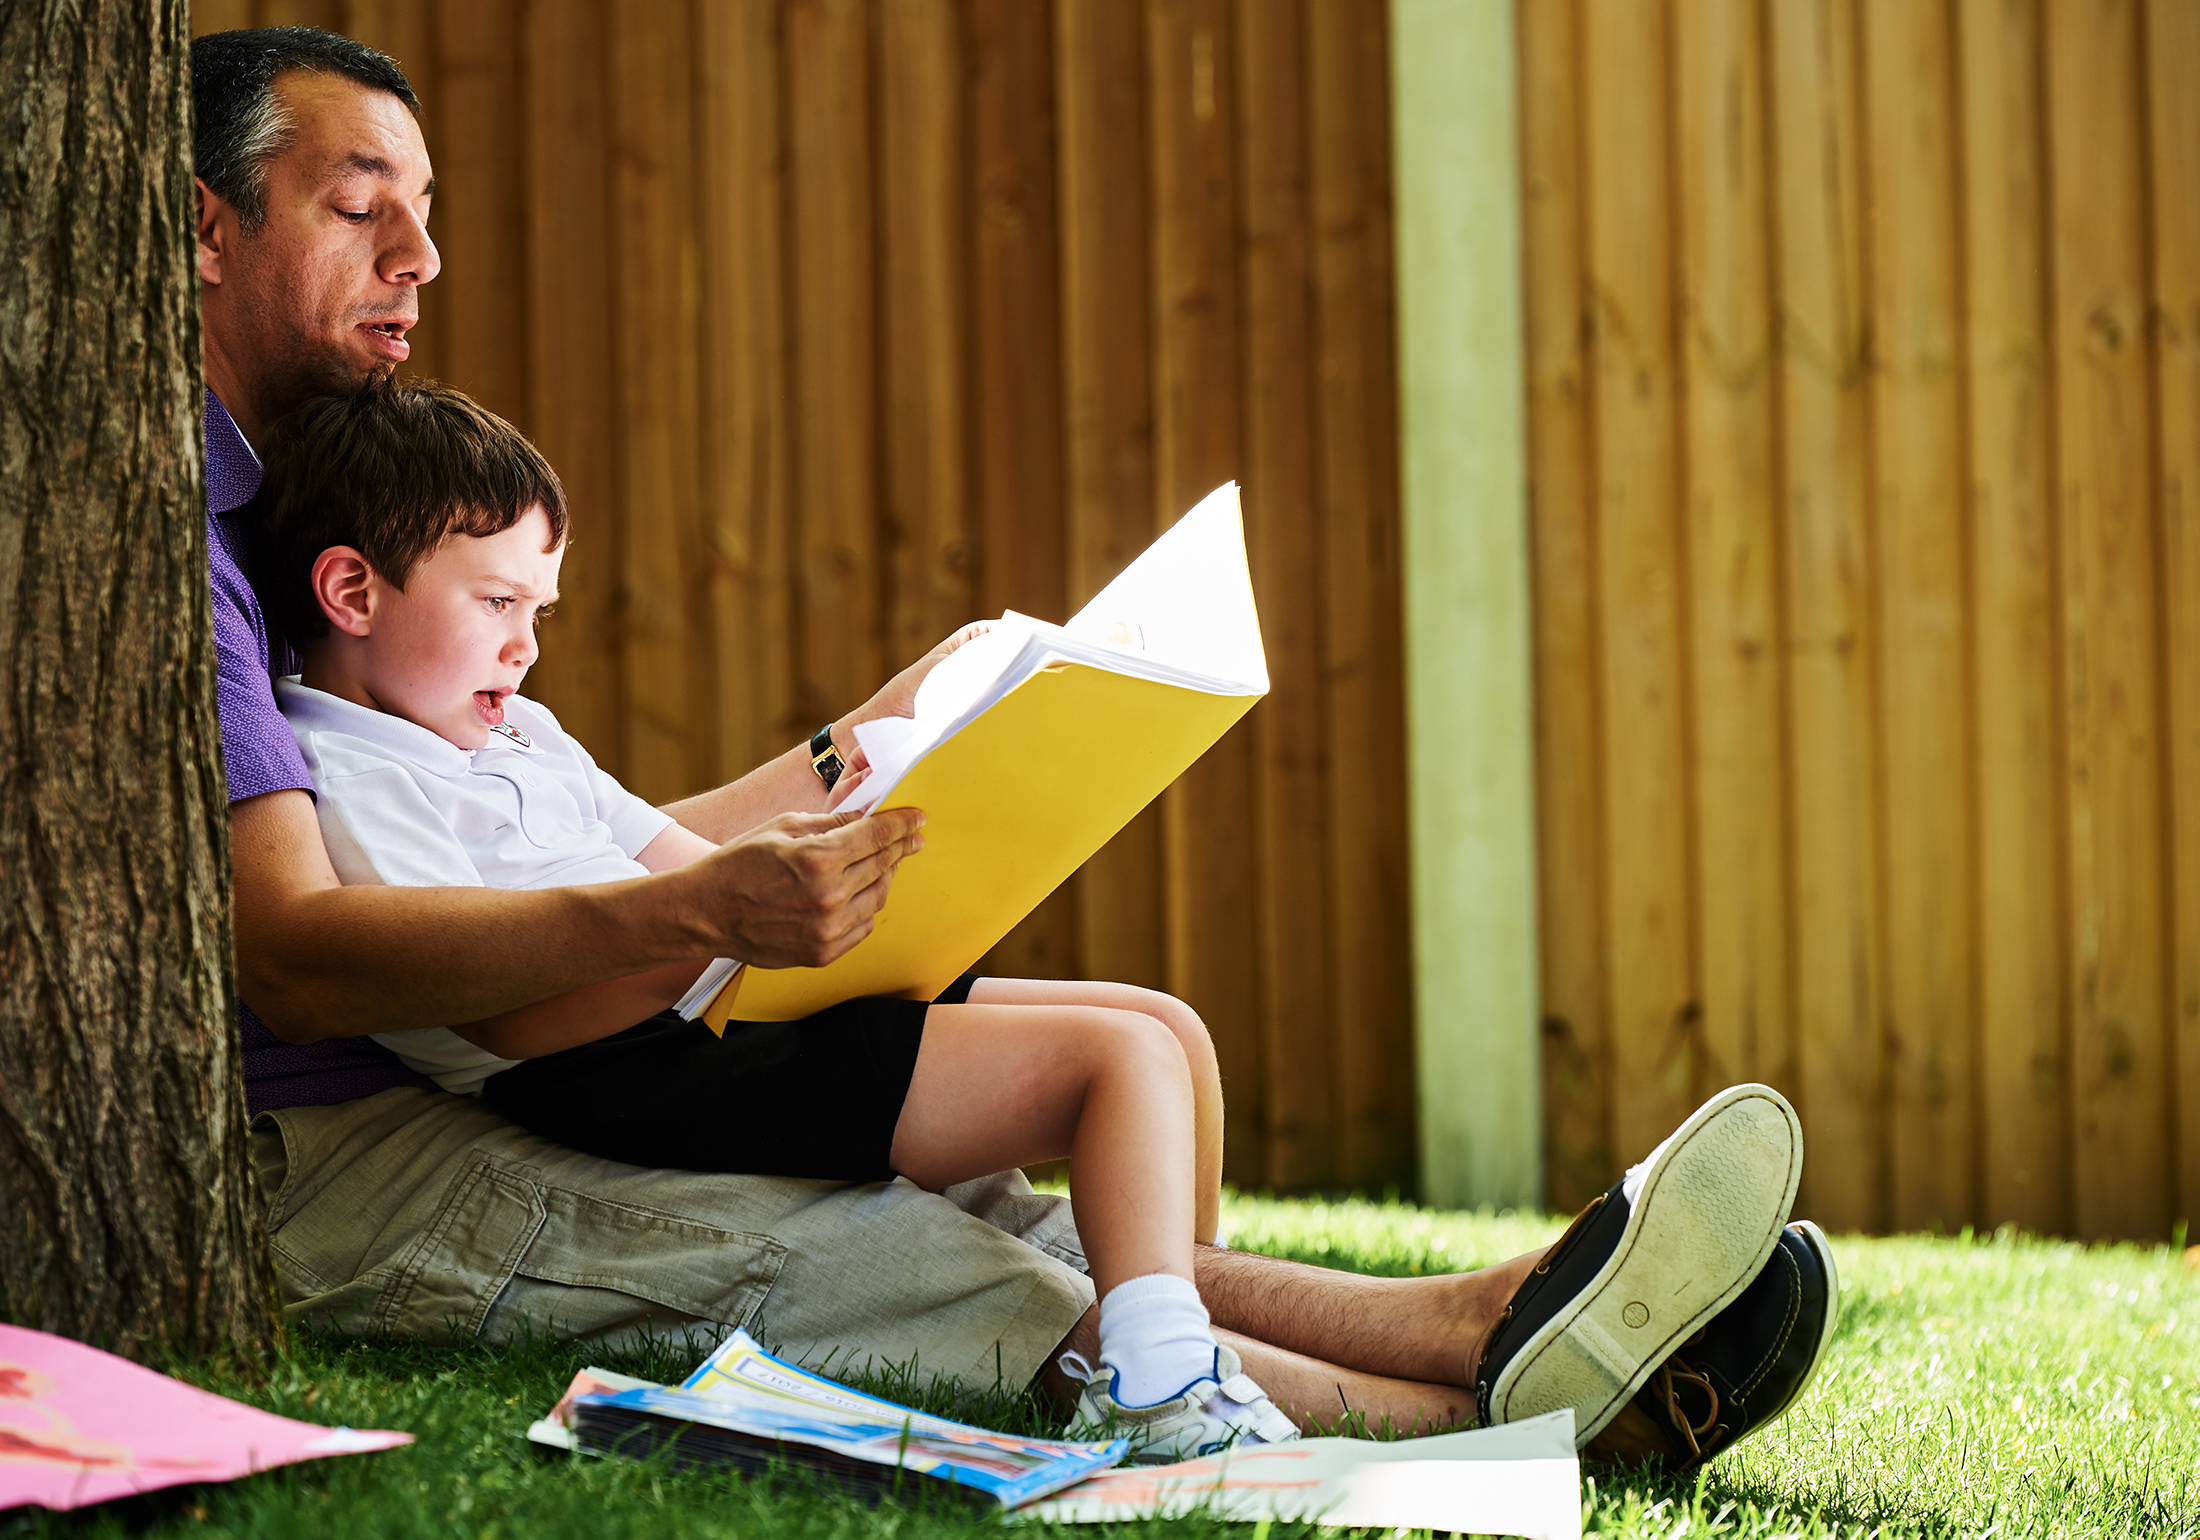 Maldon Court Prep school - Learning - reading - School photography - Fathers day